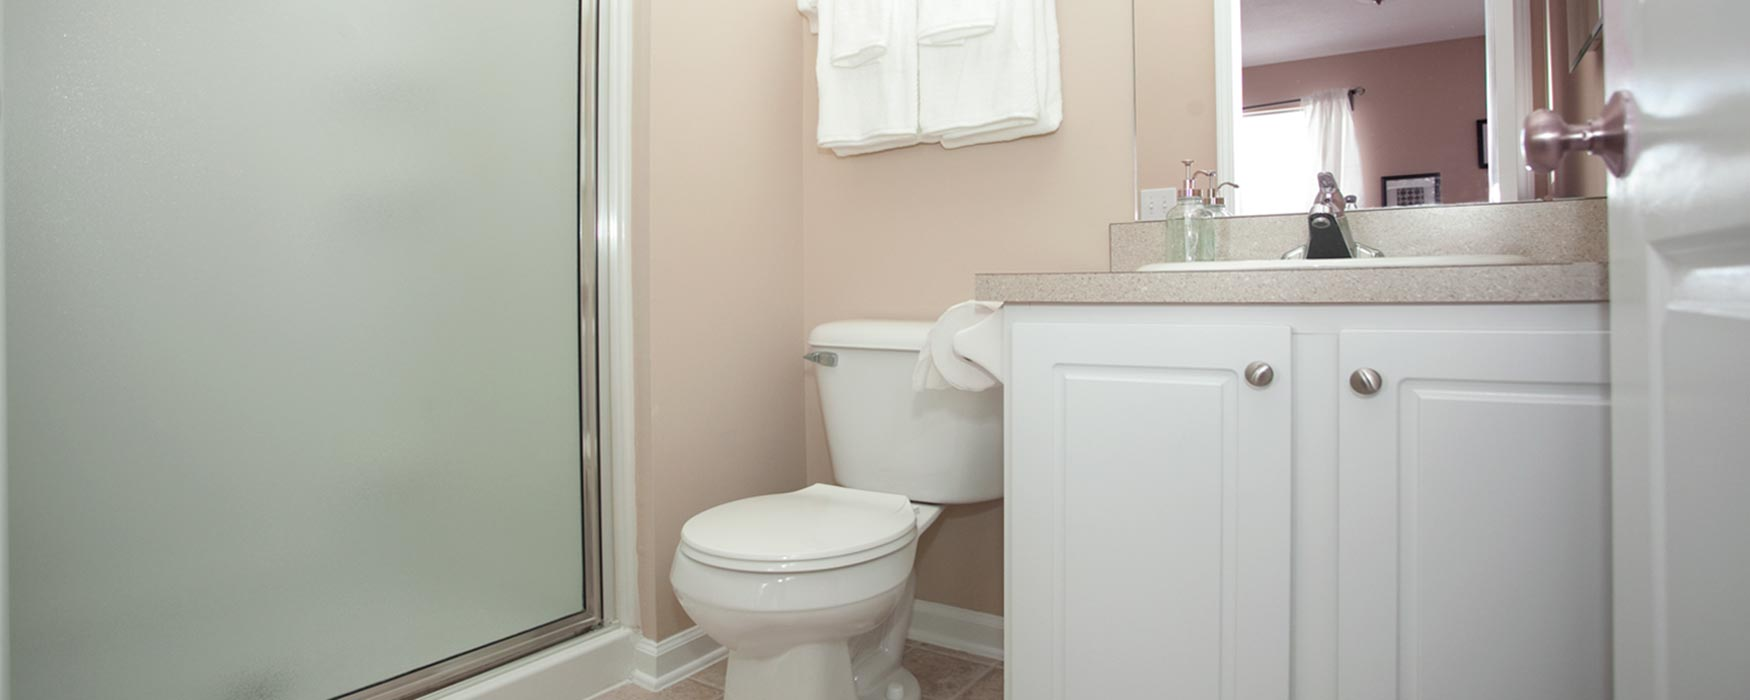 LC Preserve Crossing | Gahanna Apartments | Stansbury Town Bathroom